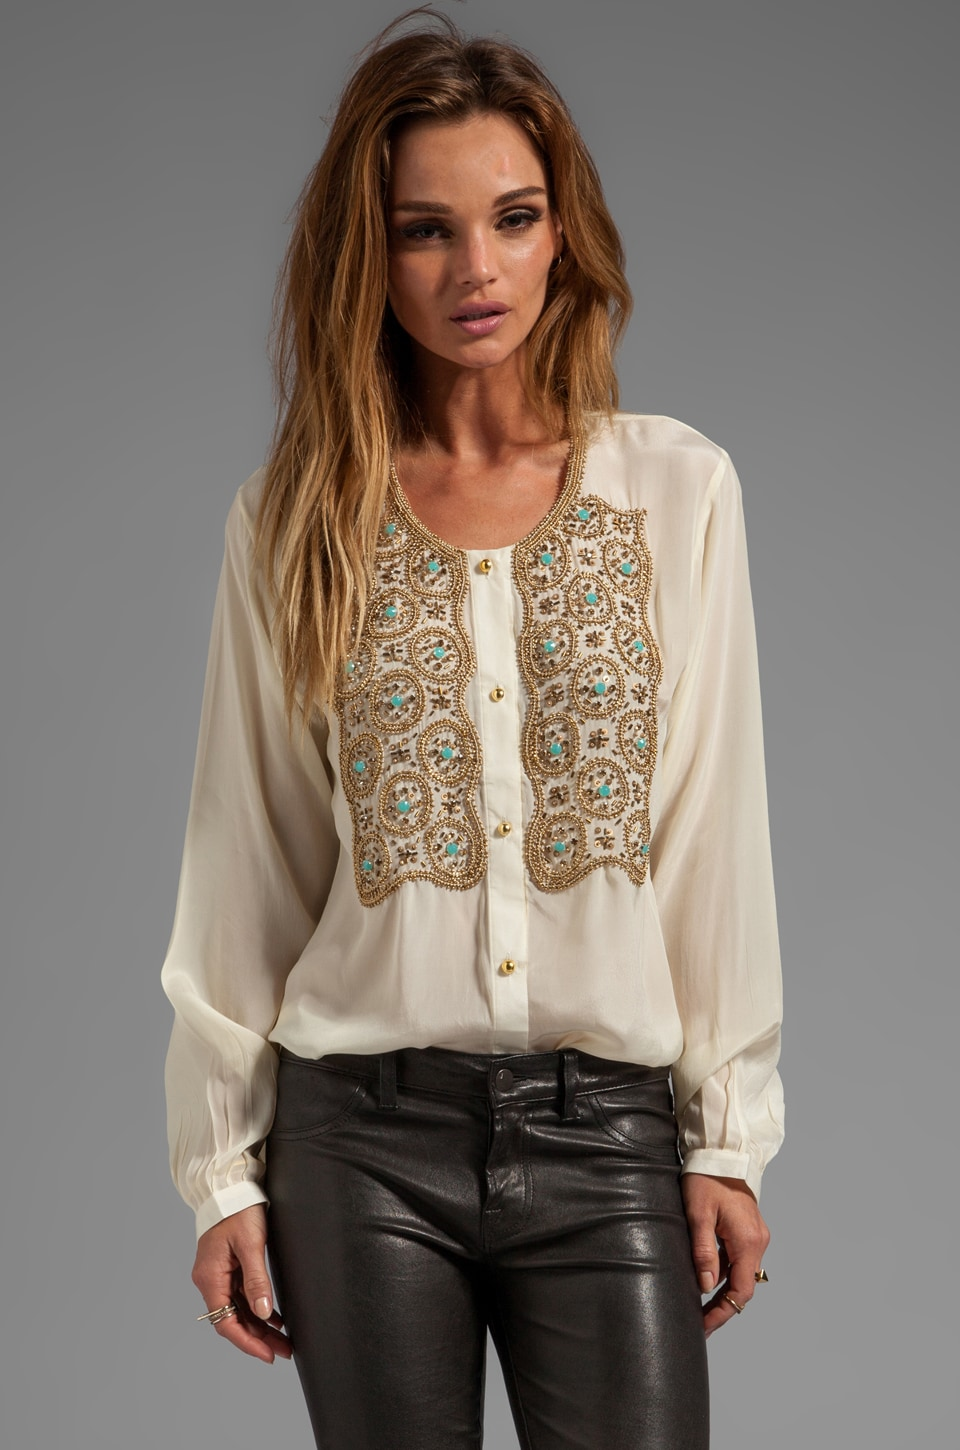 Karina Grimaldi Beaded Hera Top in Winter White